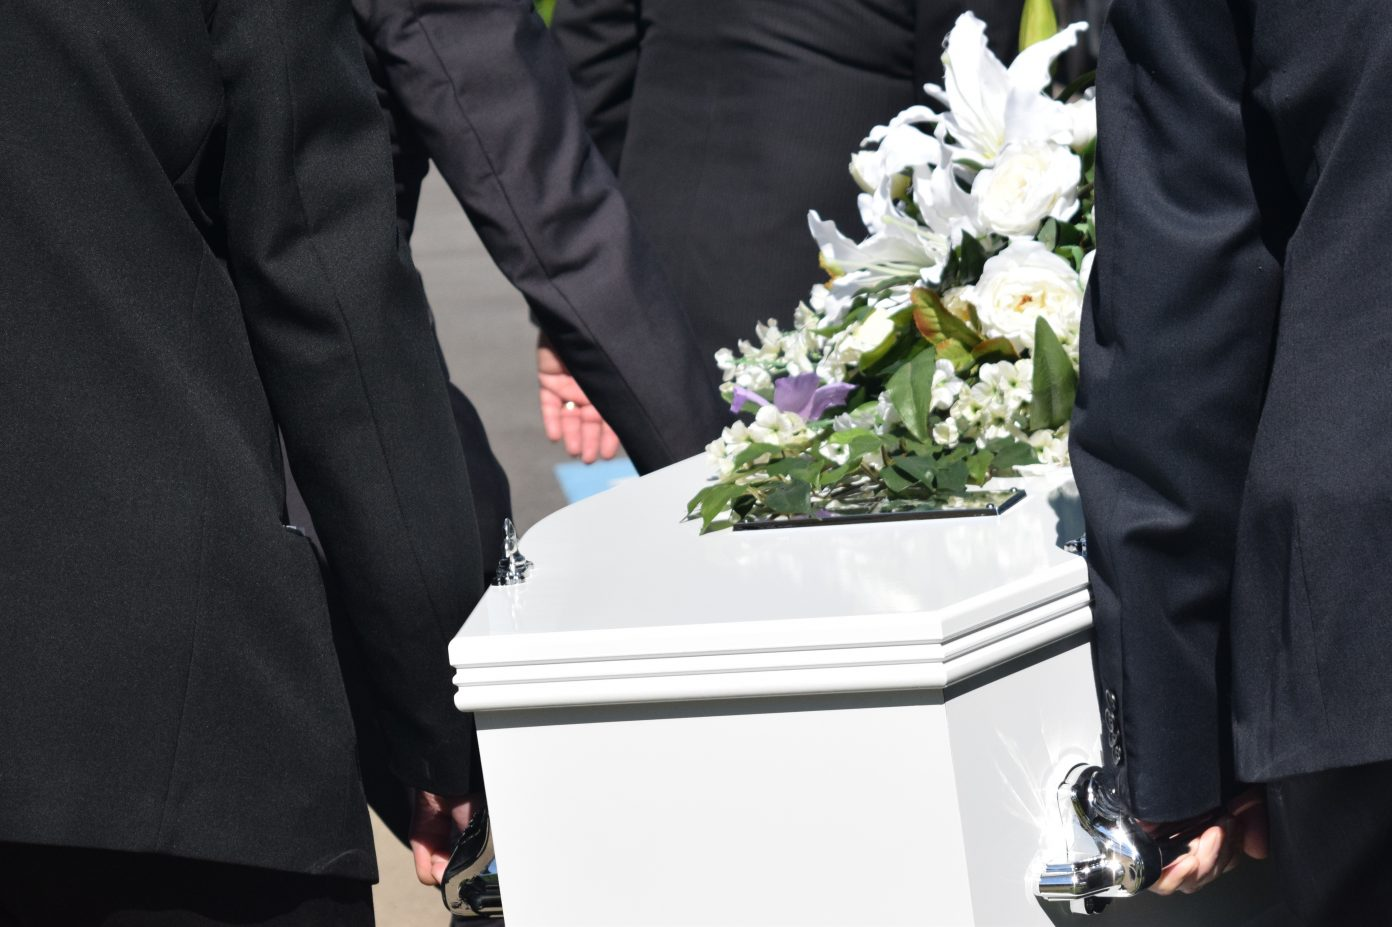 Planning Your Own Funeral | Interesting Thing of the Day